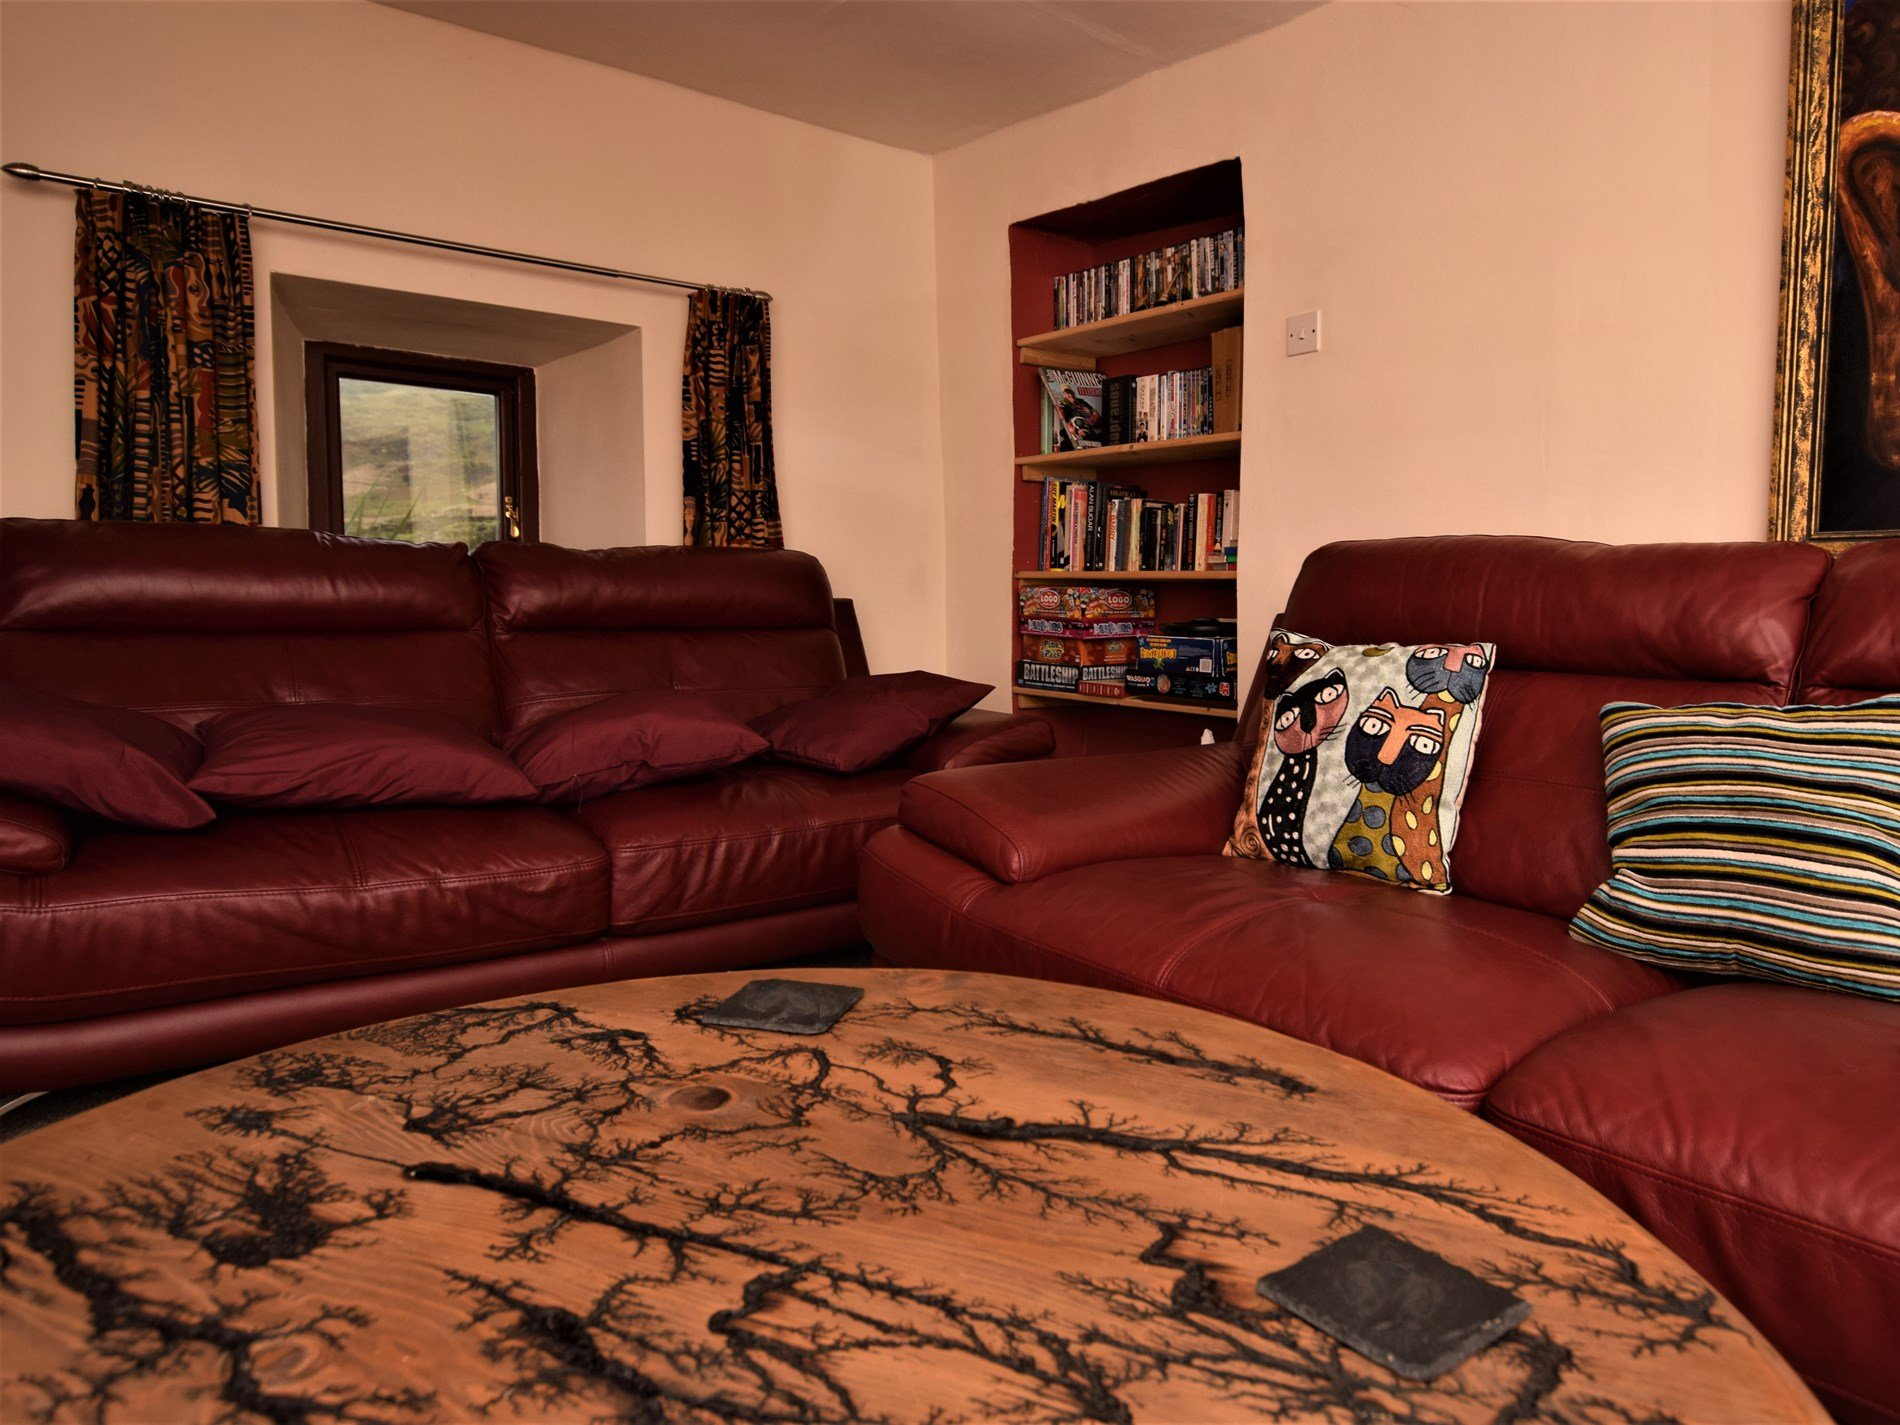 4 Bedroom House in North Wales, Snowdonia and North Wales